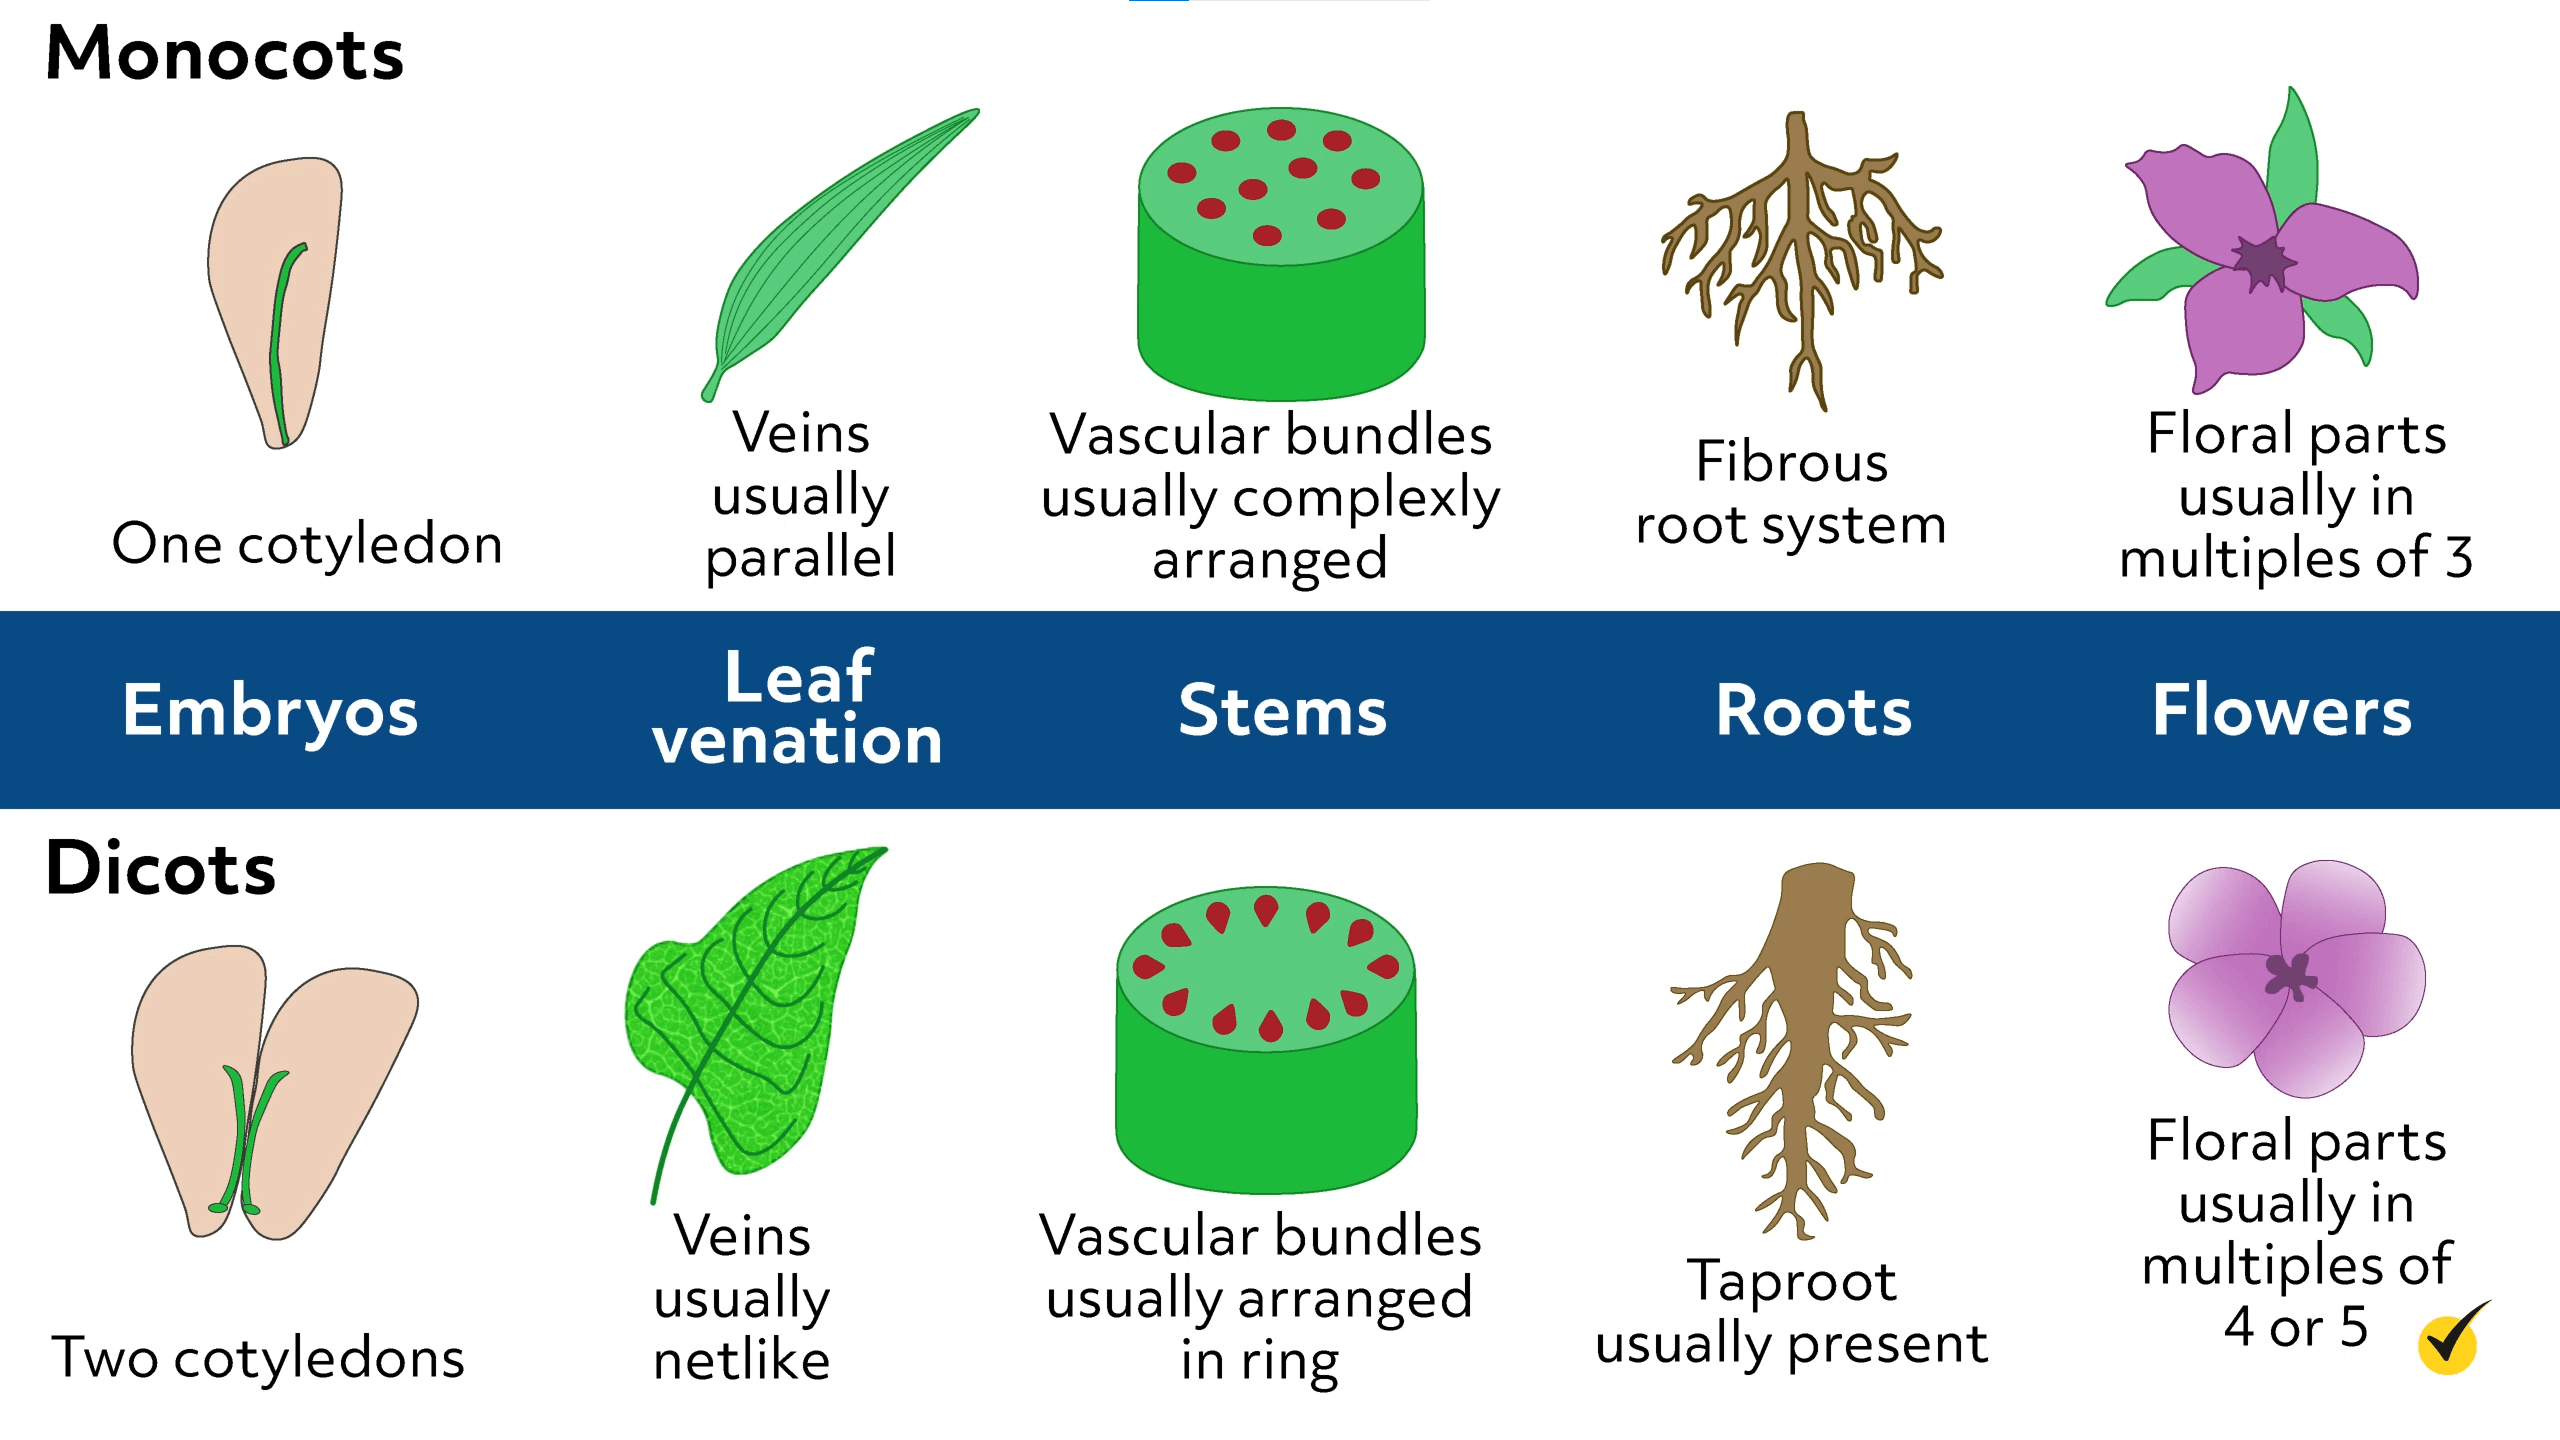 Image of the differences between monocots and dicots.